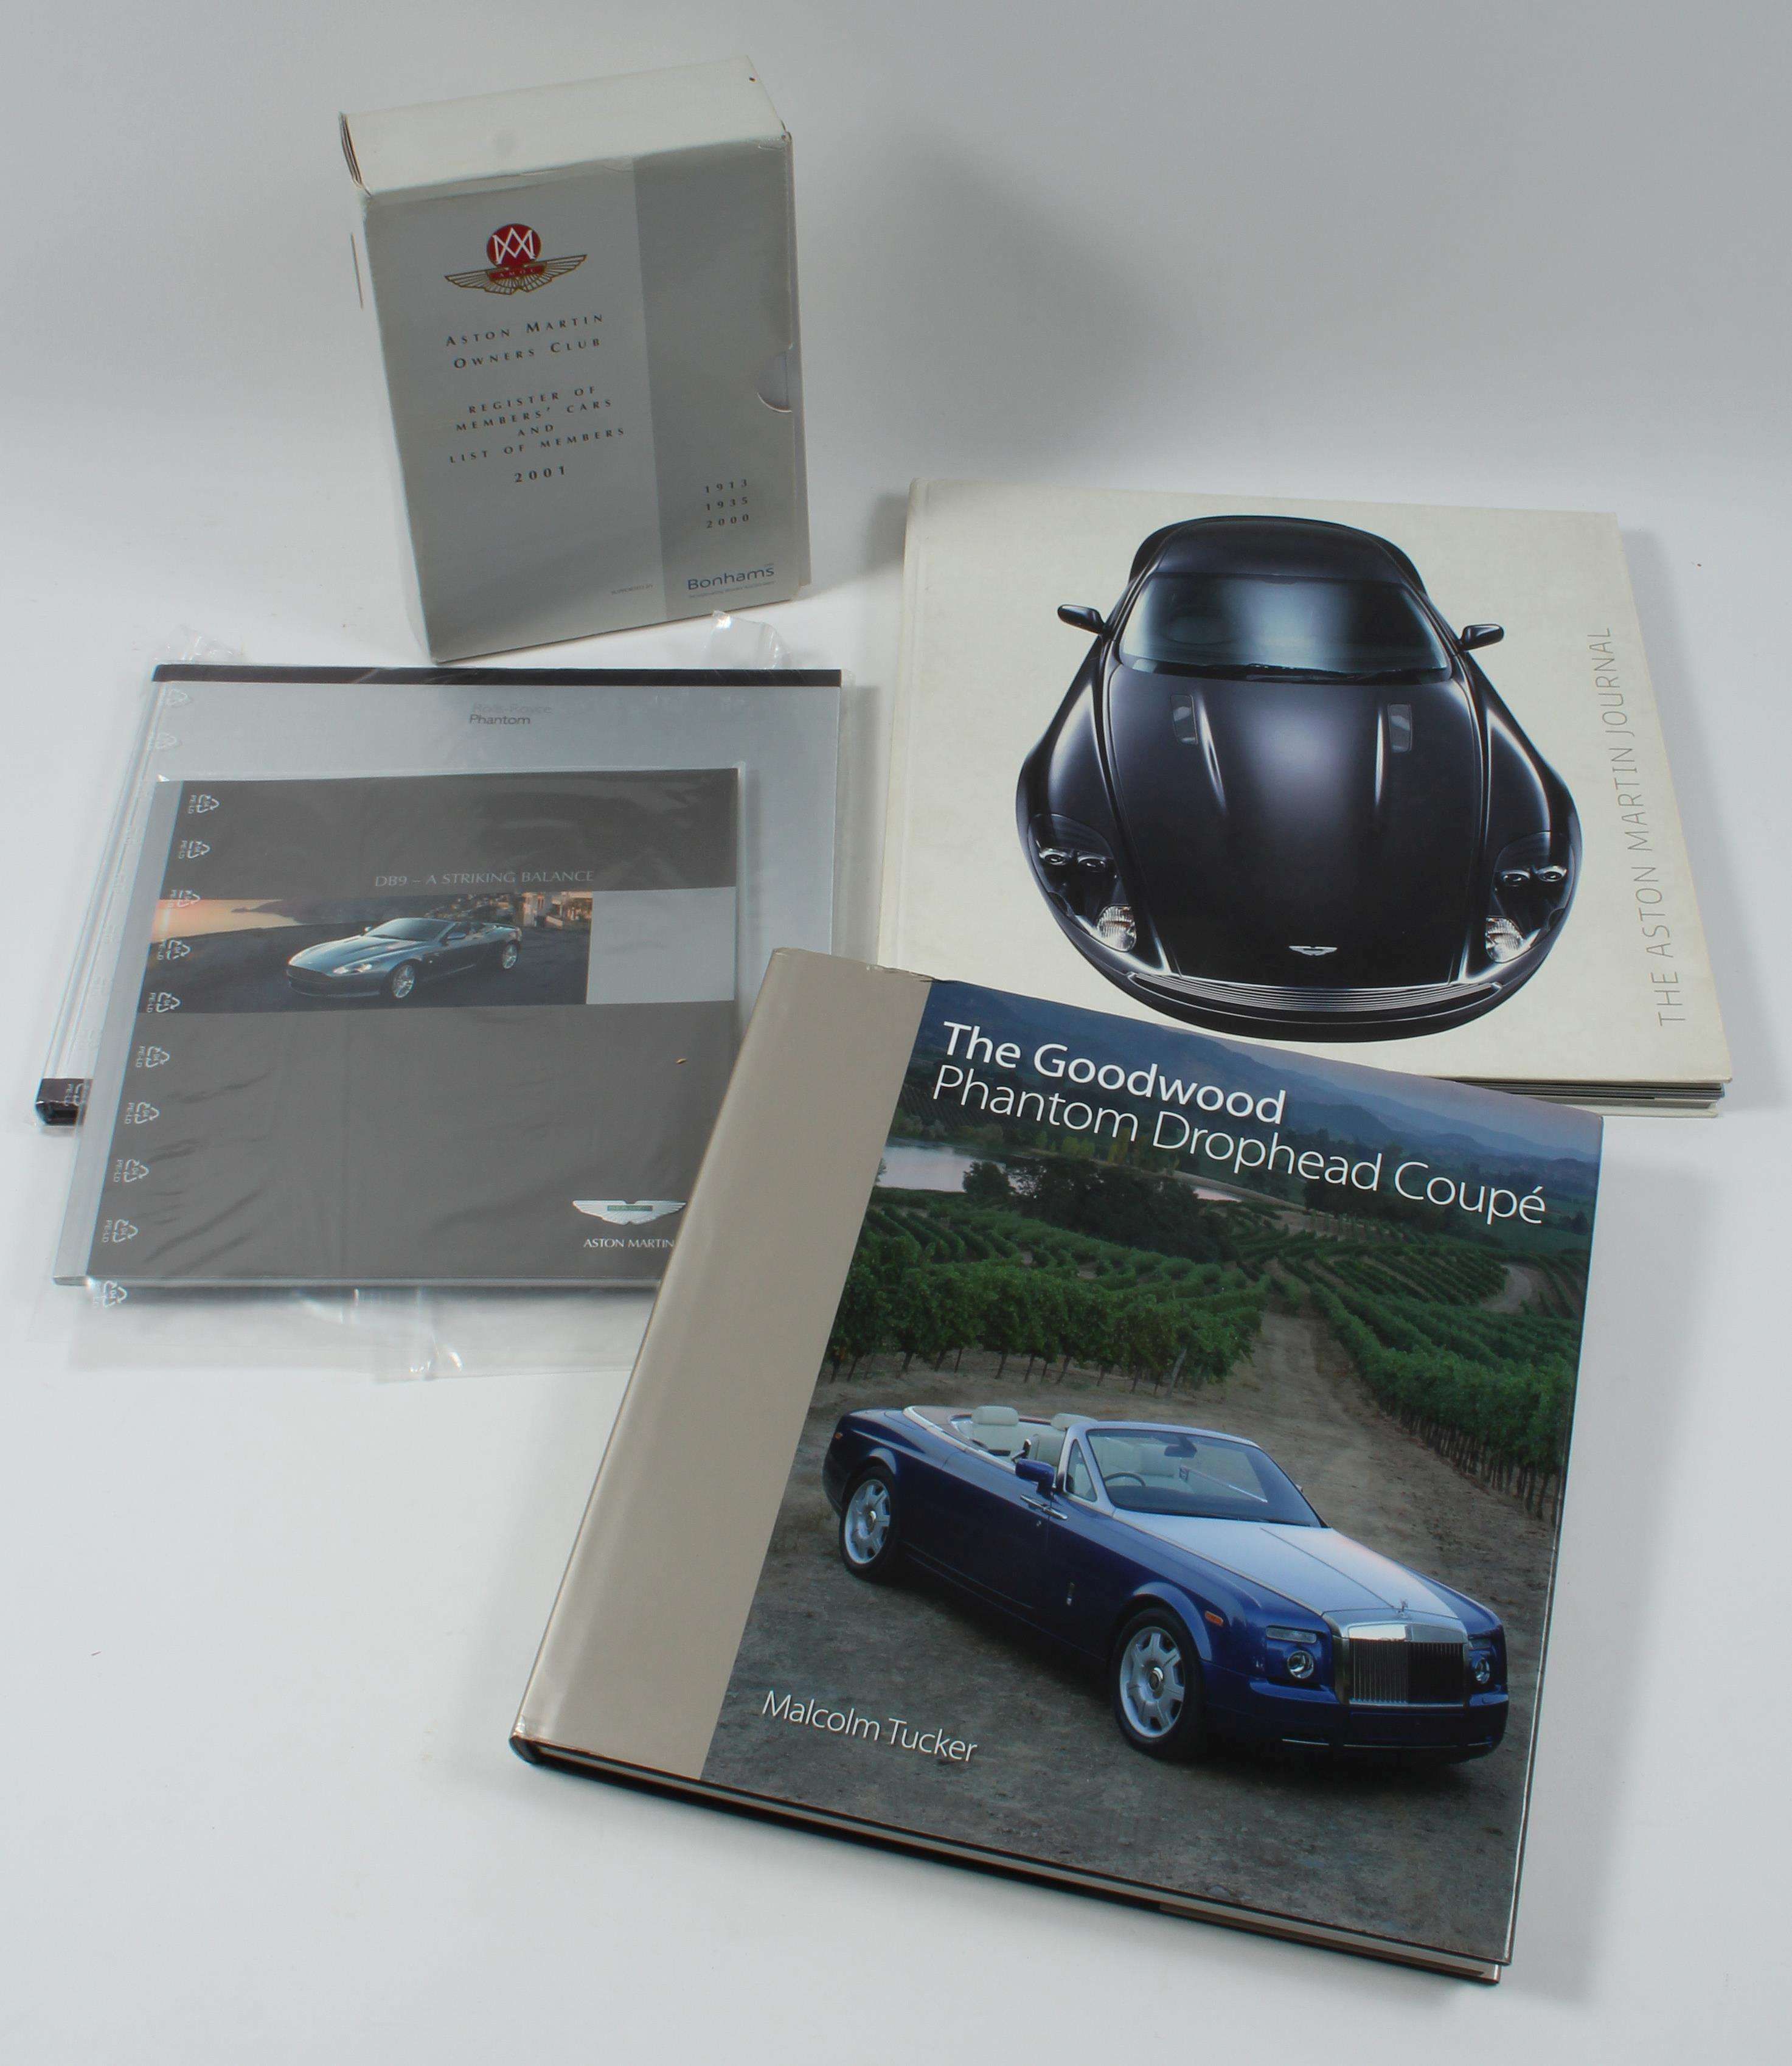 Aston Martin Rolls Royce Posters Advertising Art Comics Film And Photohistory 2016 09 20 Realized Price Eur 188 Dorotheum